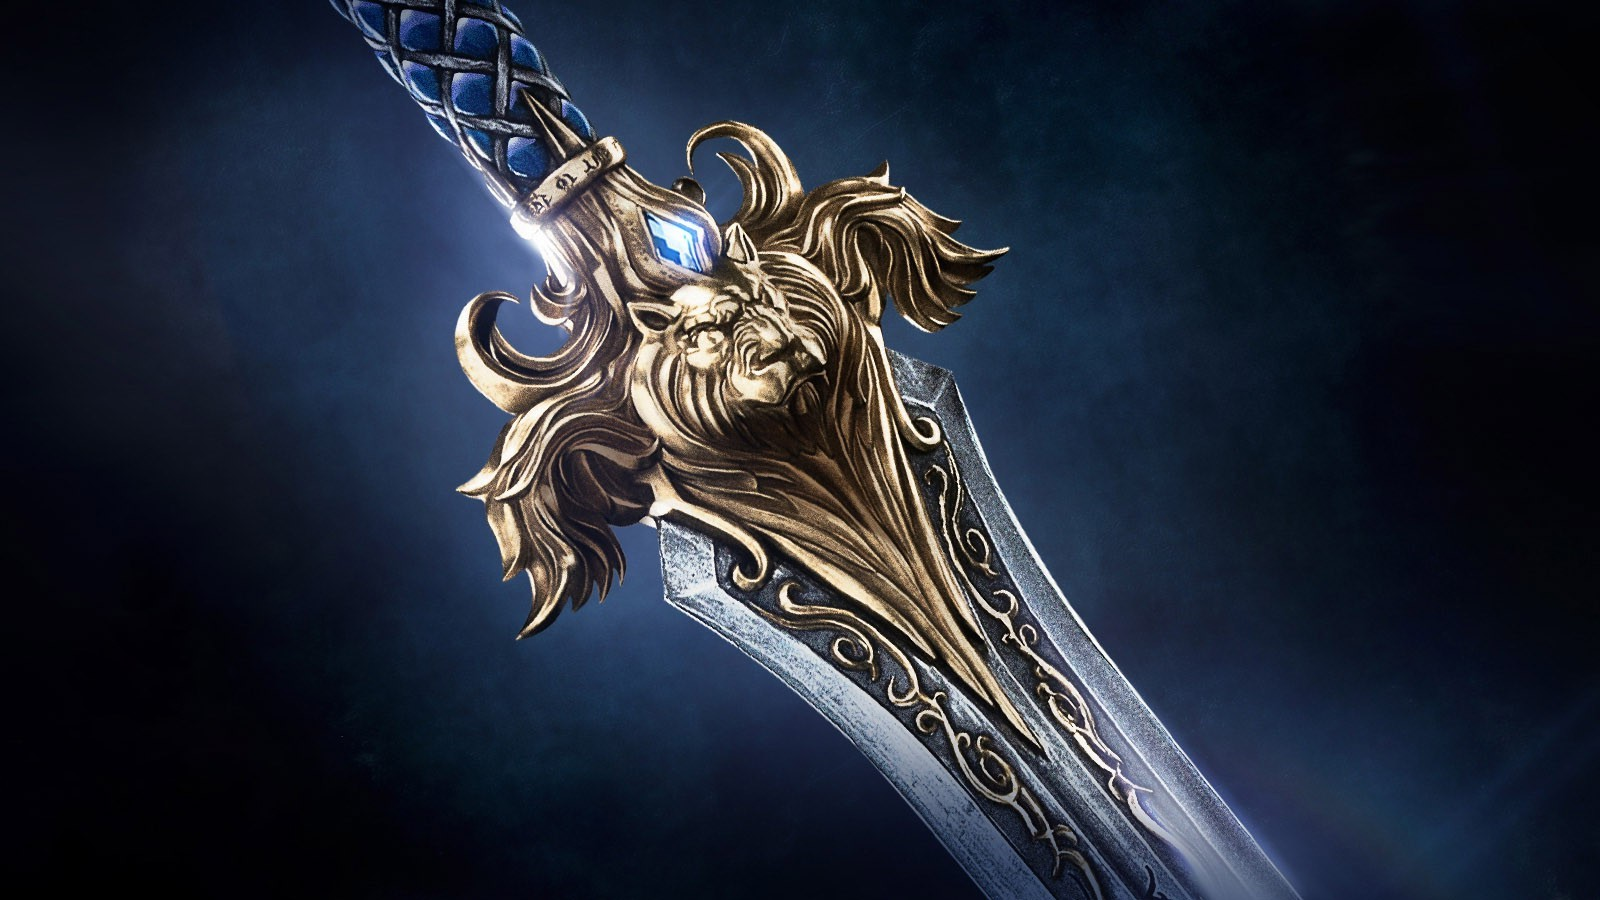 Alliance Warcraft World Of Warcraft Movies Sword Lion